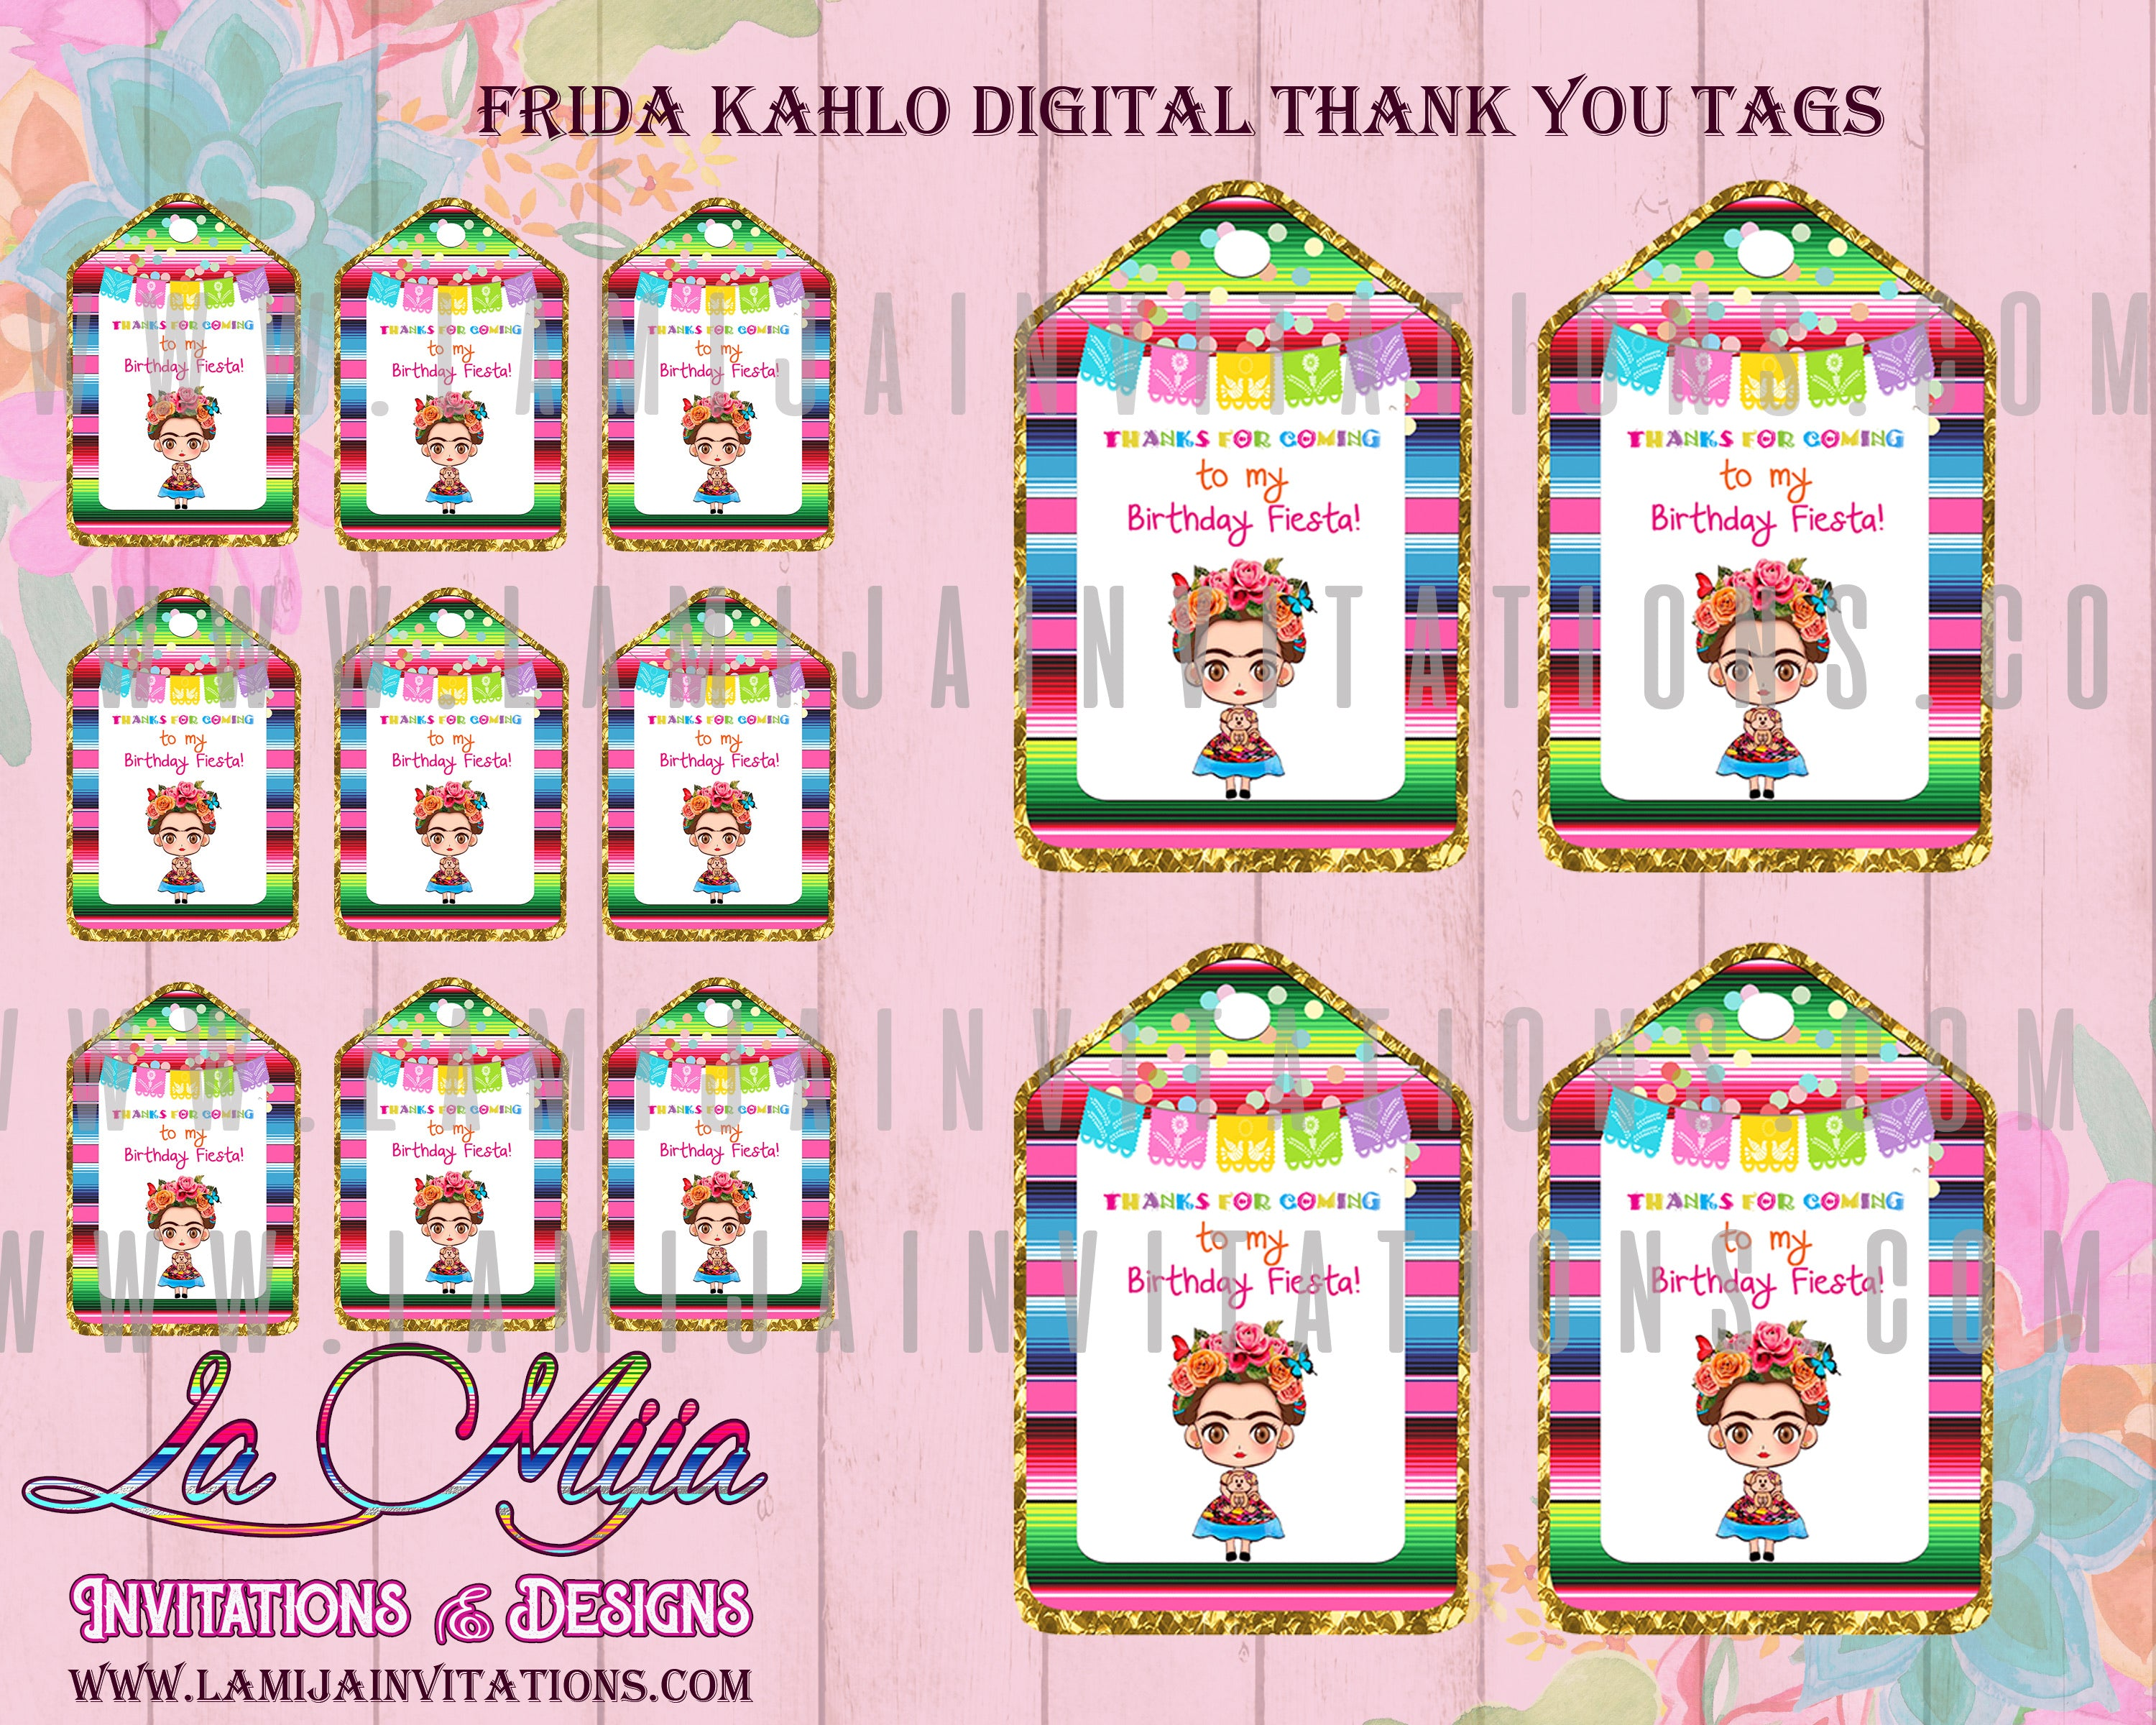 Frida Kahlo Birthday, Frida kahlo Invitations, Digital Only, Customized Tags, Frida Kahlo Favor Tags, Frida Kahlo Thank You Tags, Fiesta frida Kahlo, Invitaciones Frida Kahlo